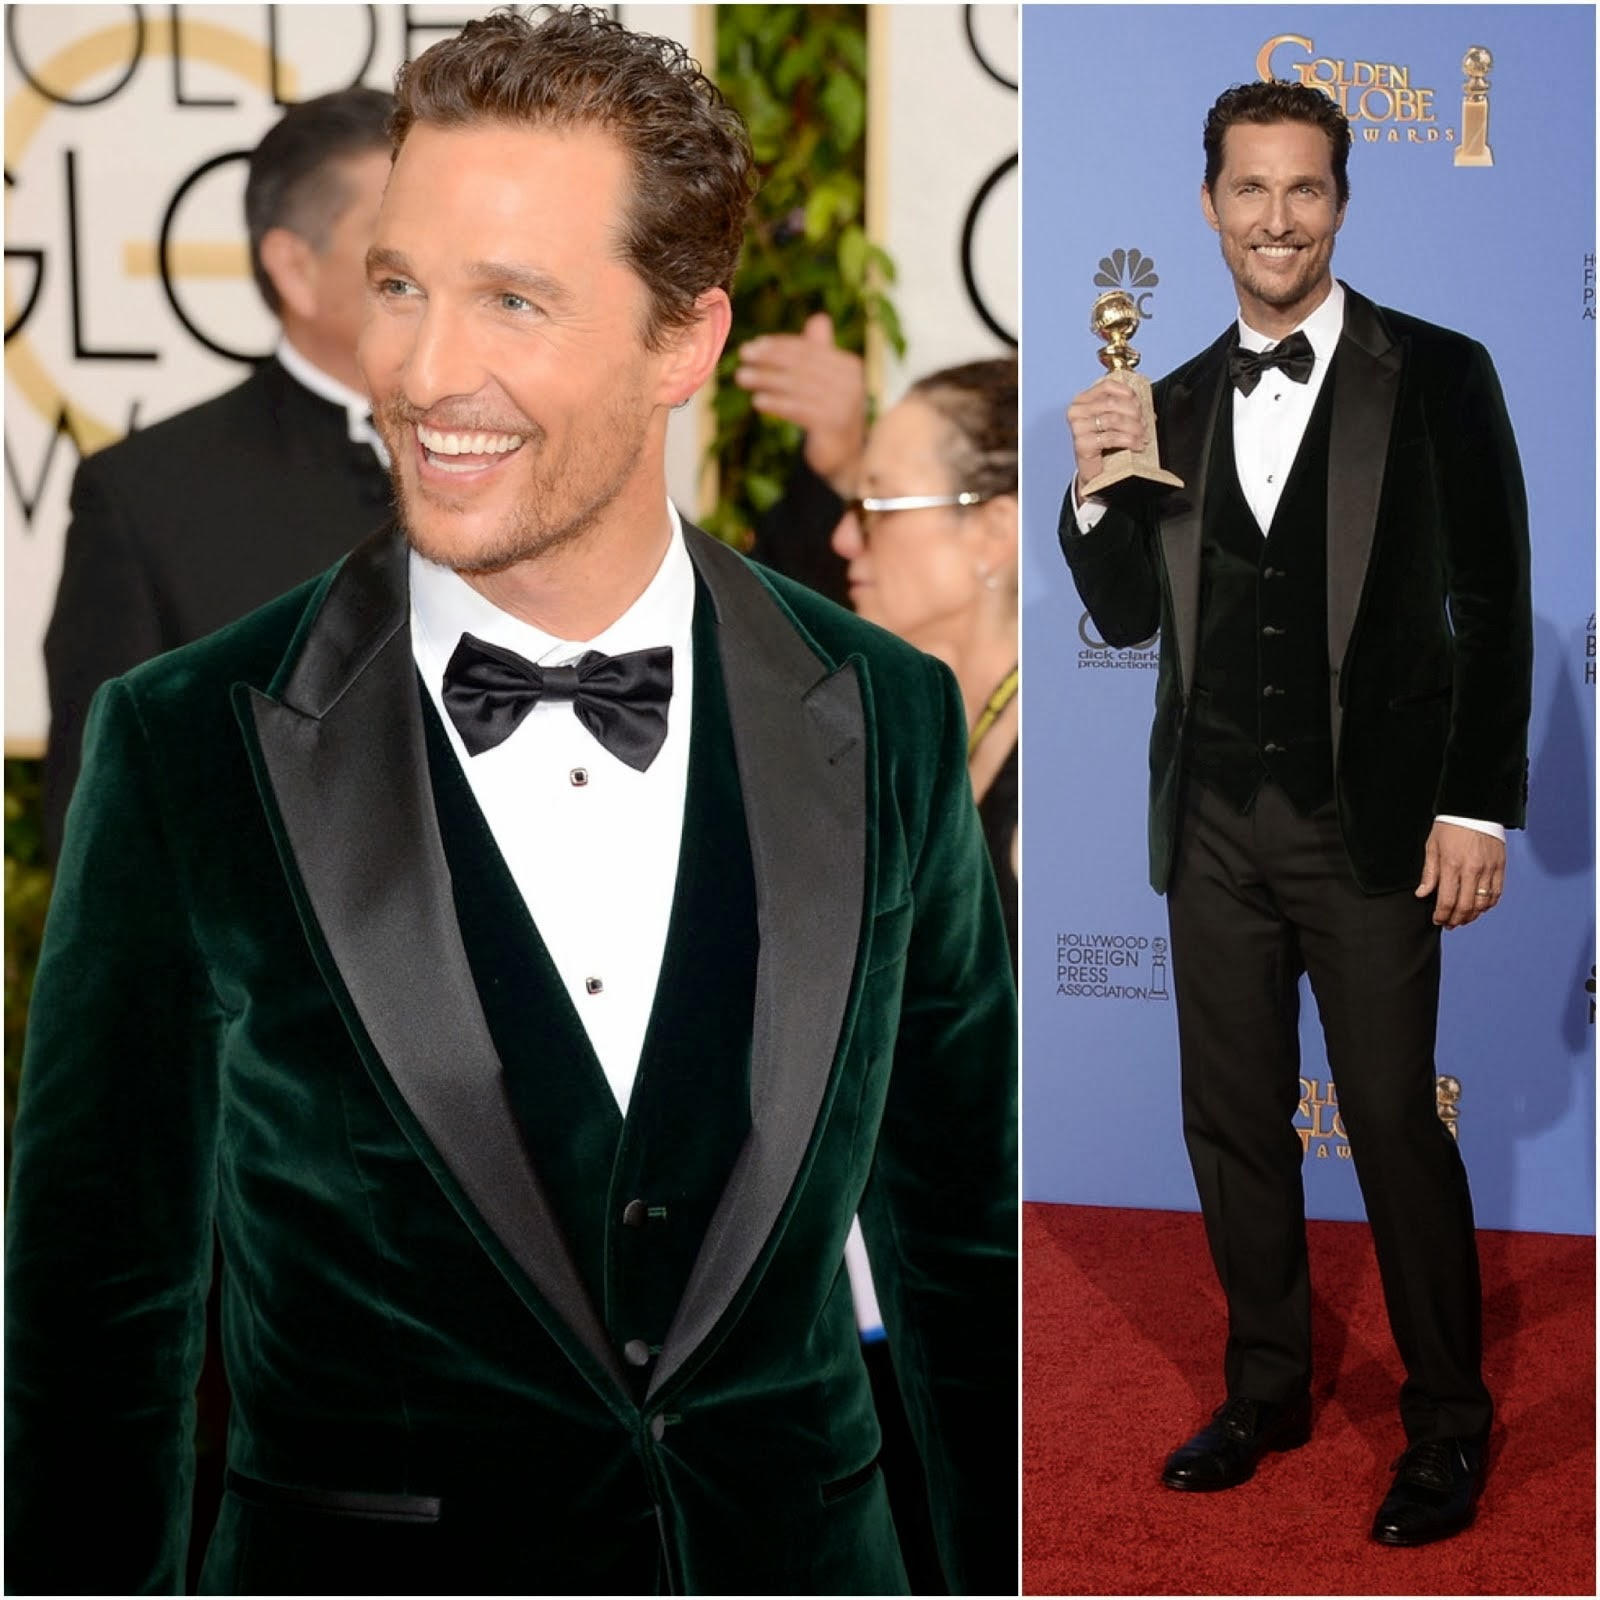 Matthew McConaughey in Dolce & Gabbana - 71st Annual Golden Globe Awards